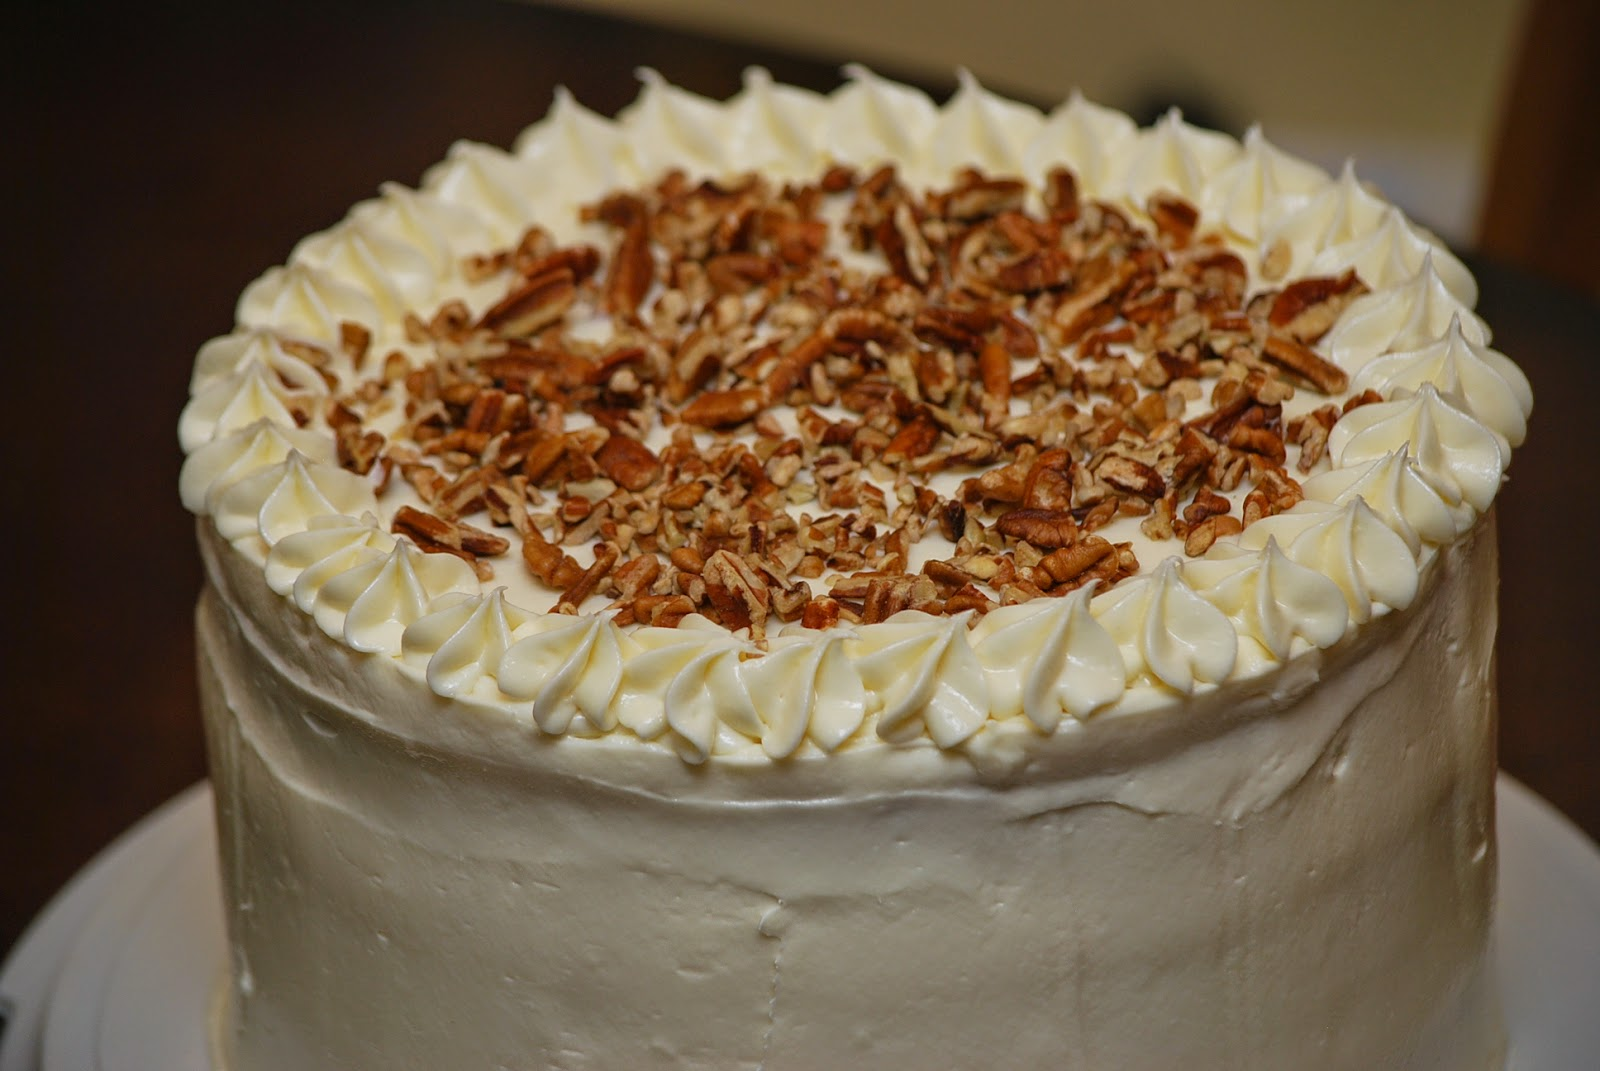 Italian Cake Recipes With Pictures: My Story In Recipes: Italian Cream Cake